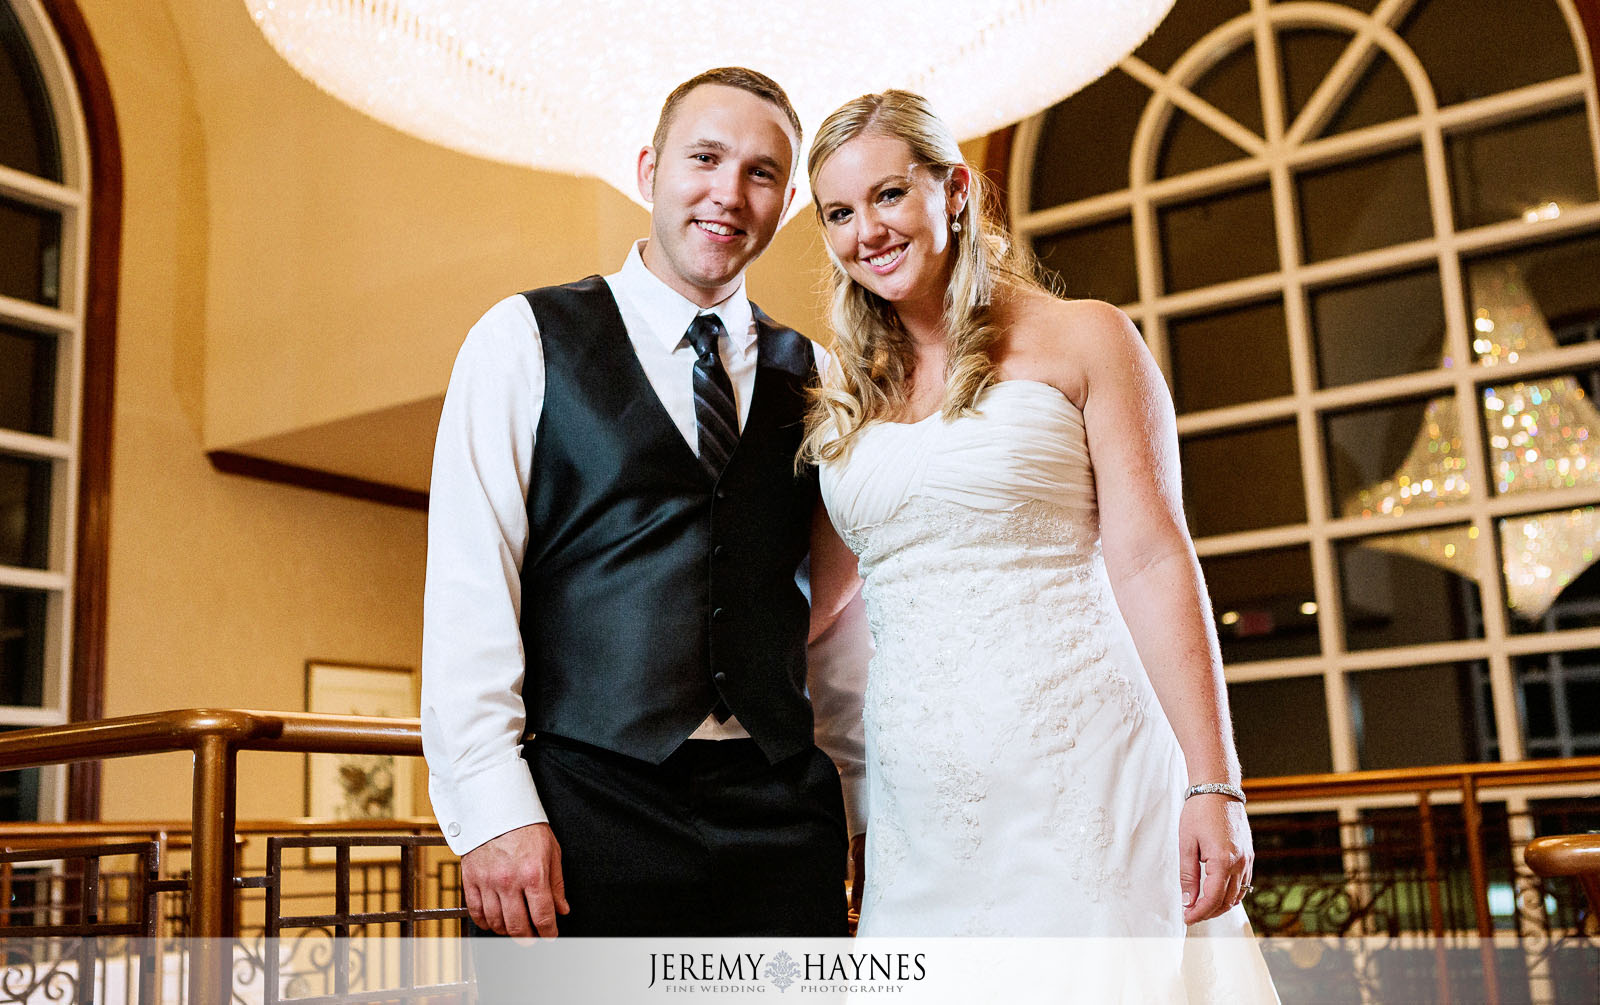 30-community-life-center-indianapolis-wedding-photographers-reception-court-yard-couple-pictures.jpg